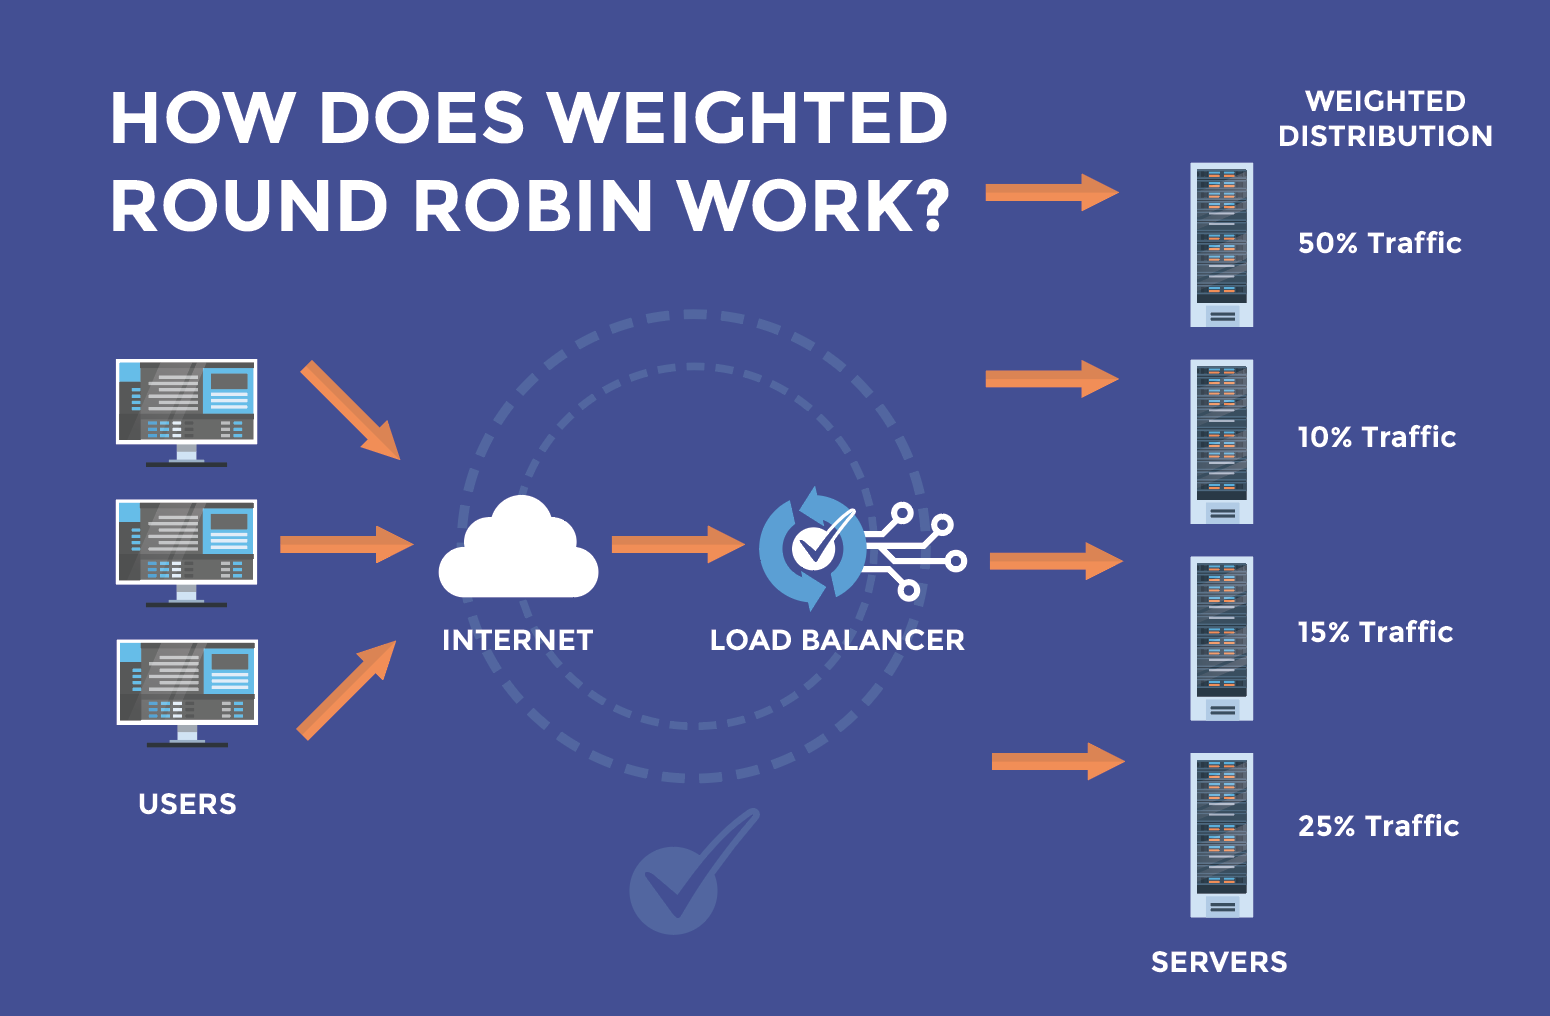 How does weighed load balancing work